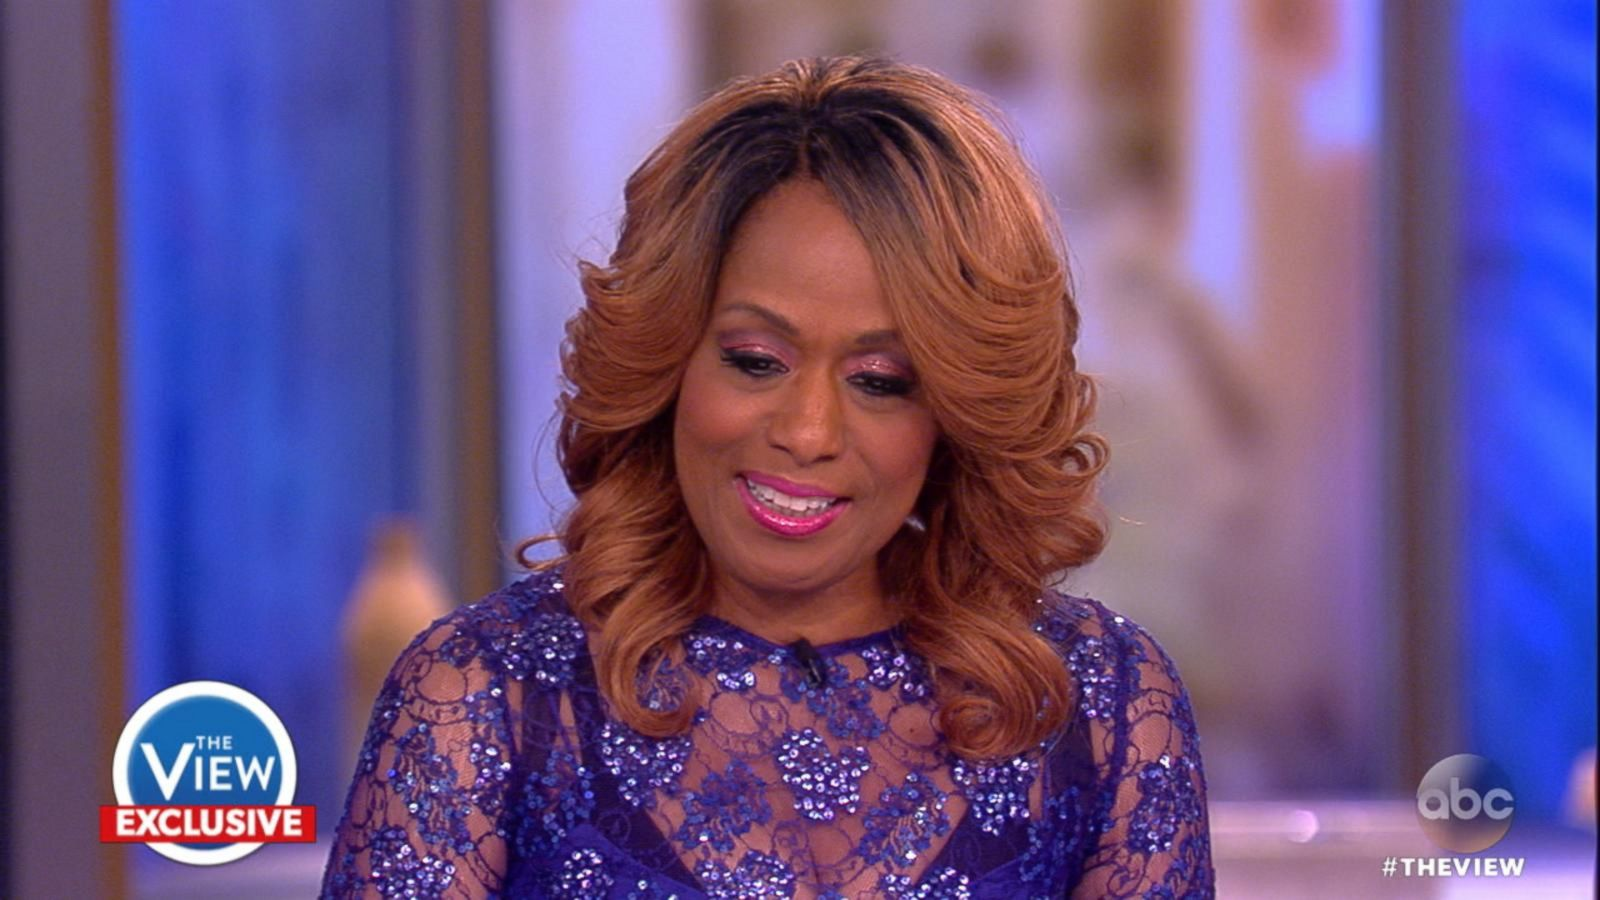 VIDEO: Jennifer Holliday Explains Why She Dropped Out of Trump's Inauguration